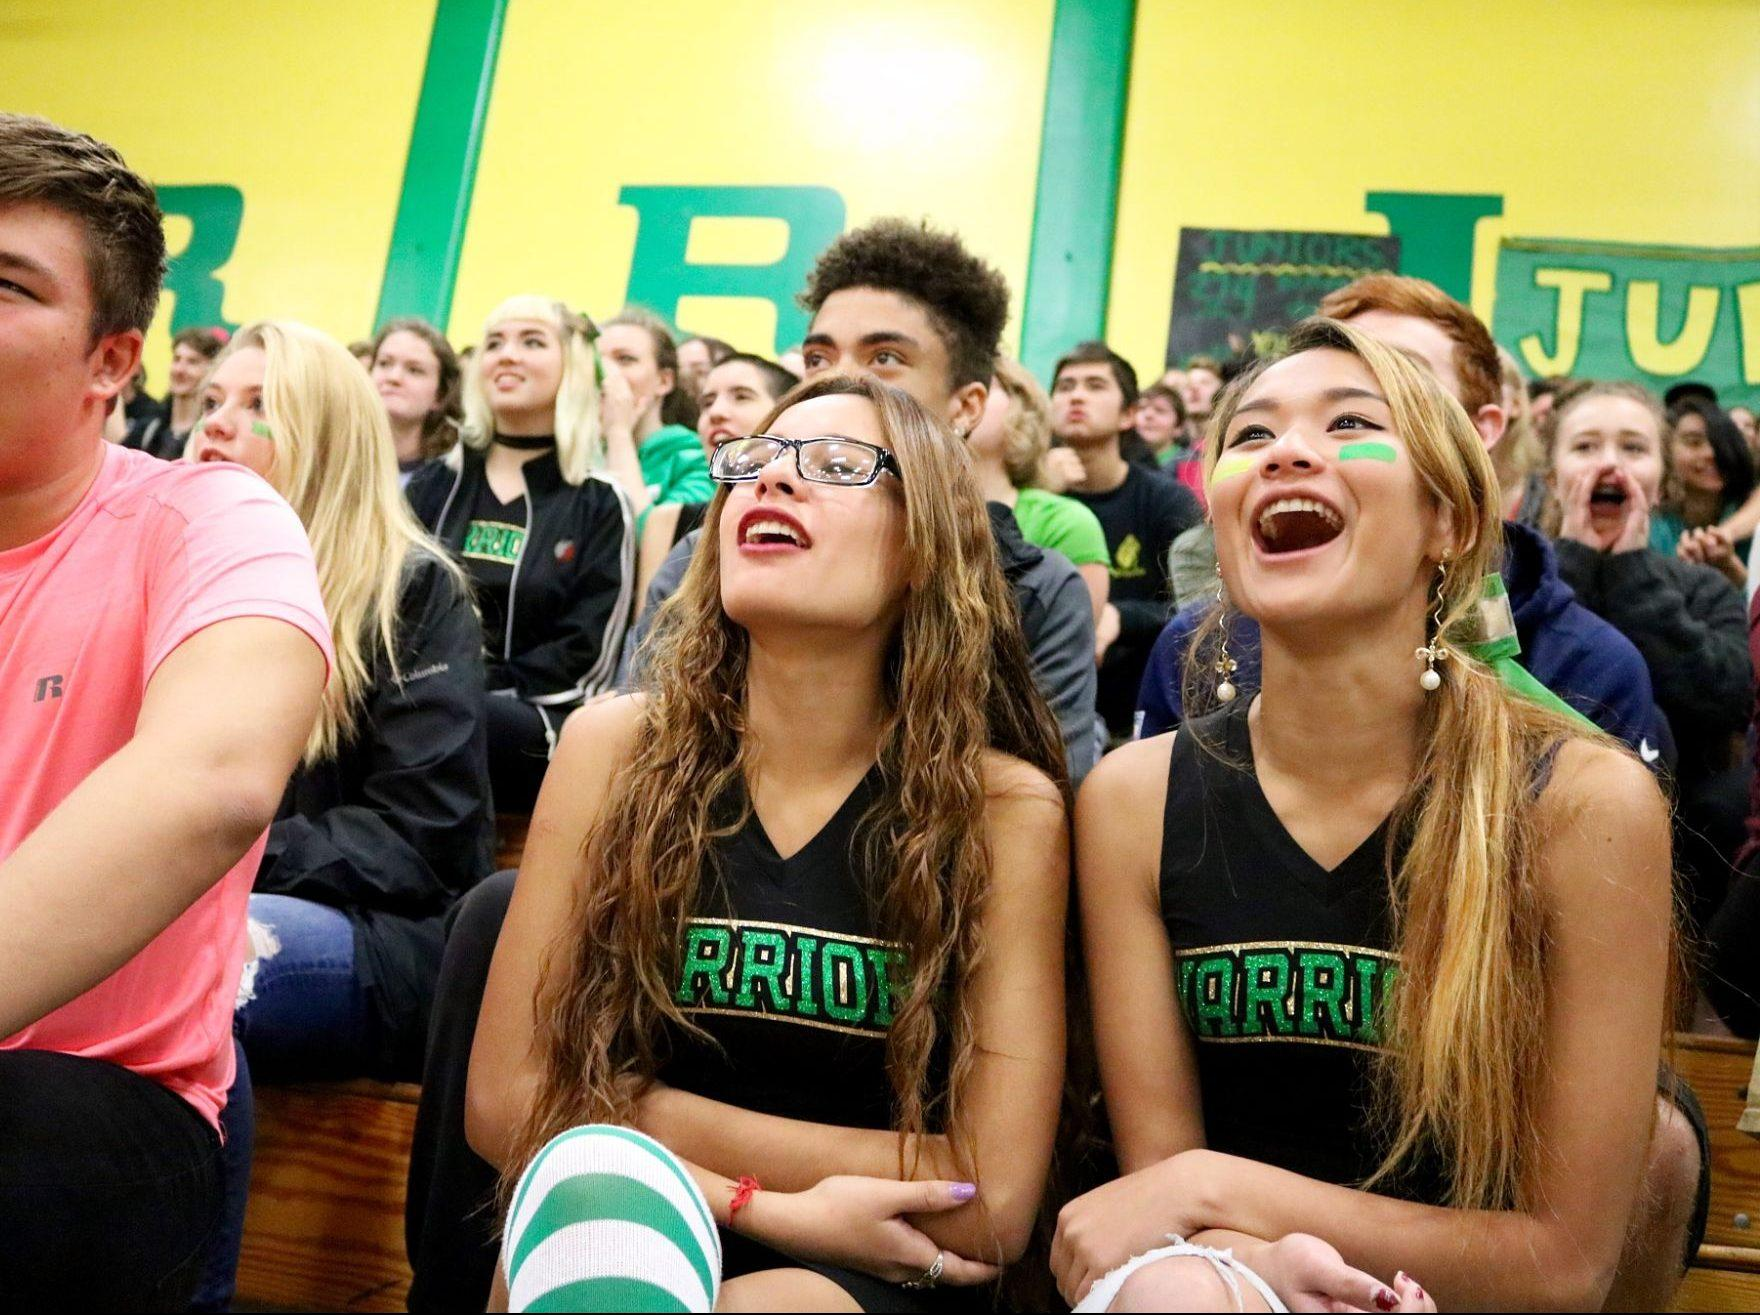 Cleveland students go back to the basics sporting the classic green and yellow football stripes rather than double stripes or dots.